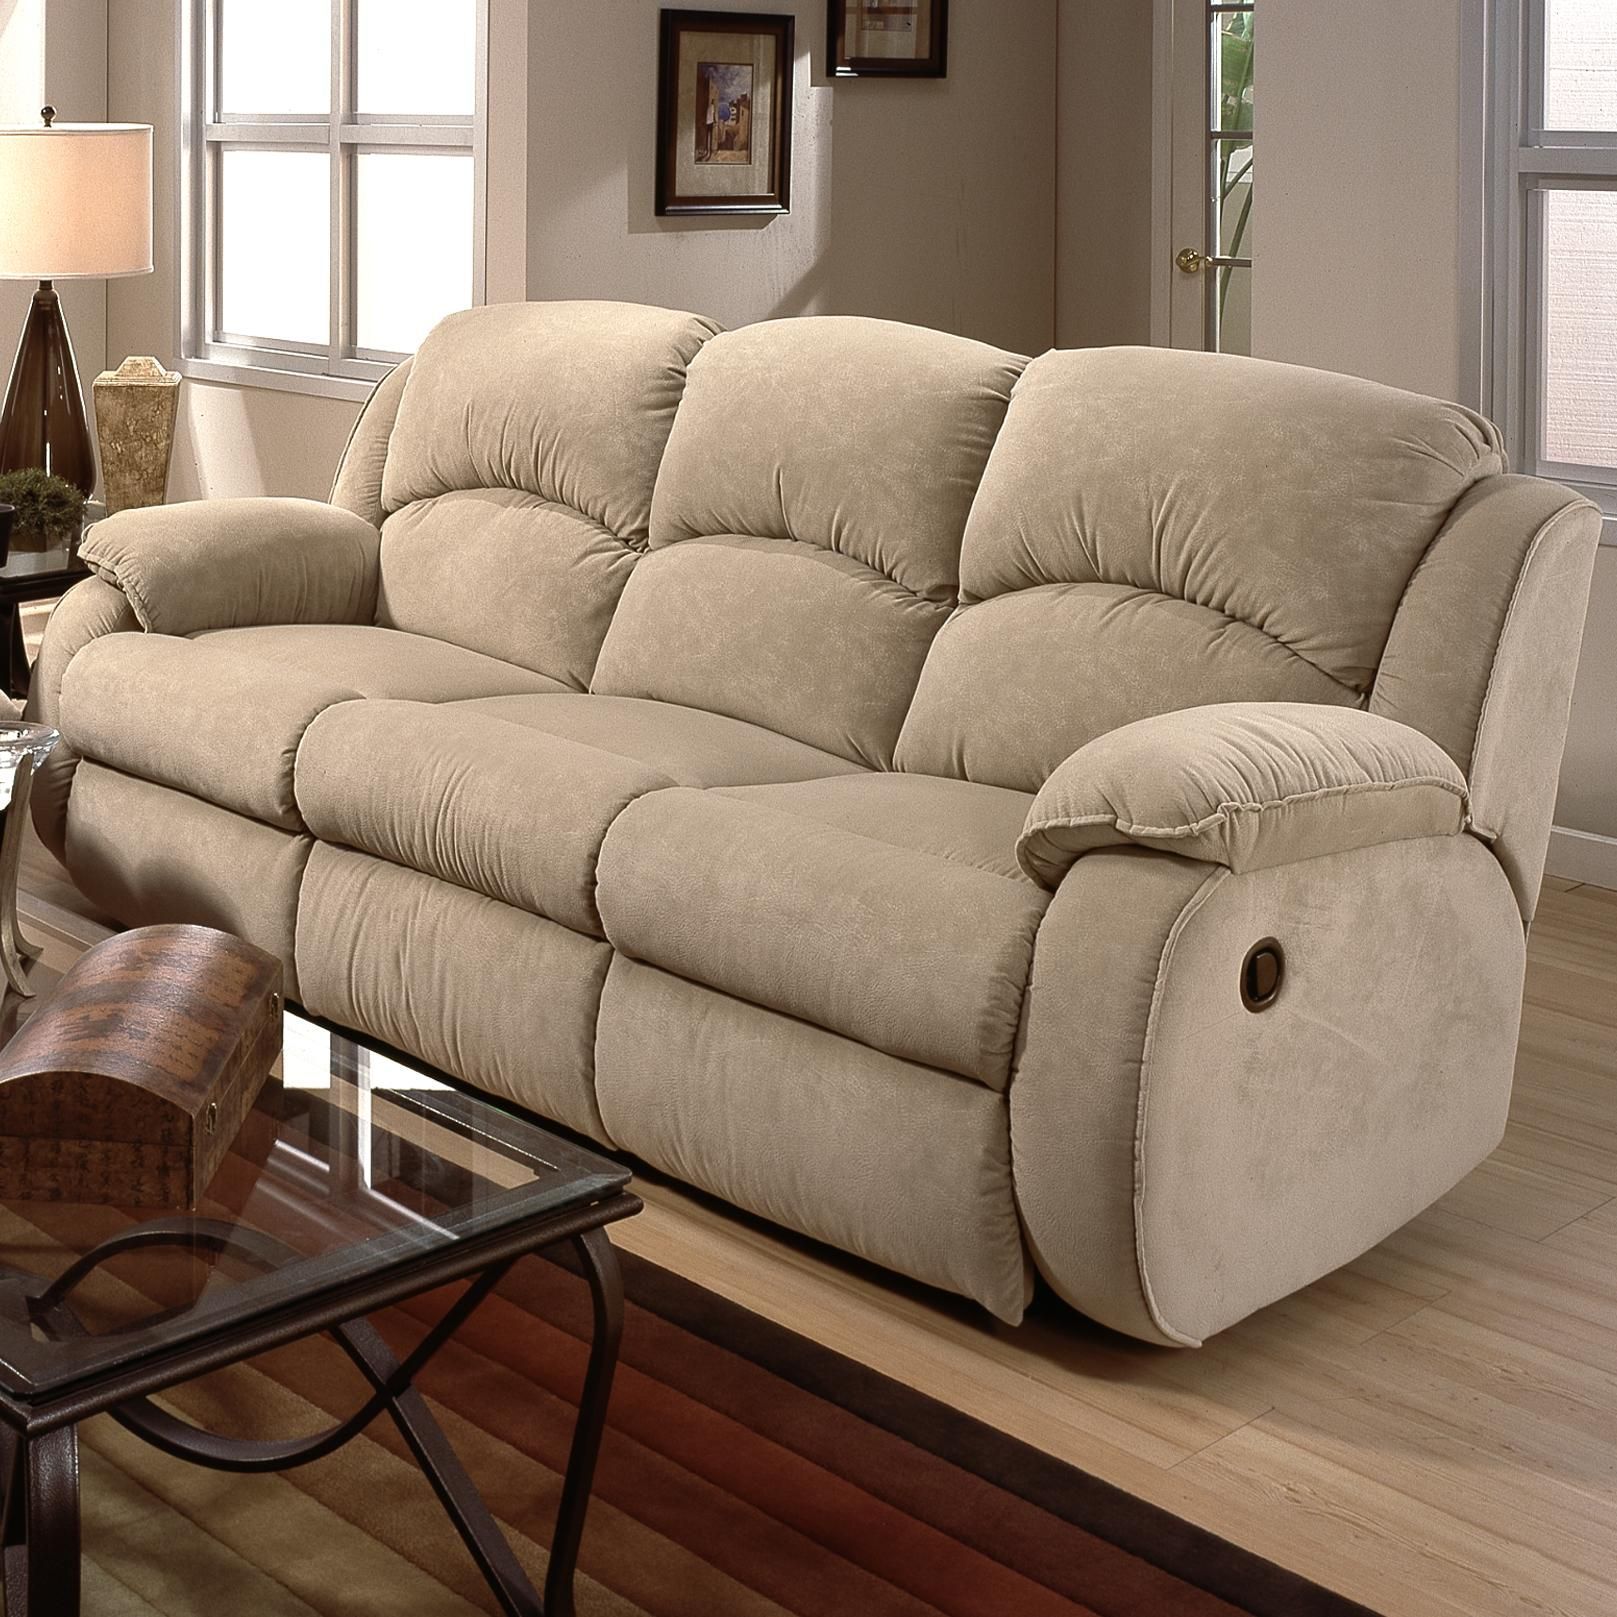 Cagney Powerized Double Reclining Sofa by Southern Motion